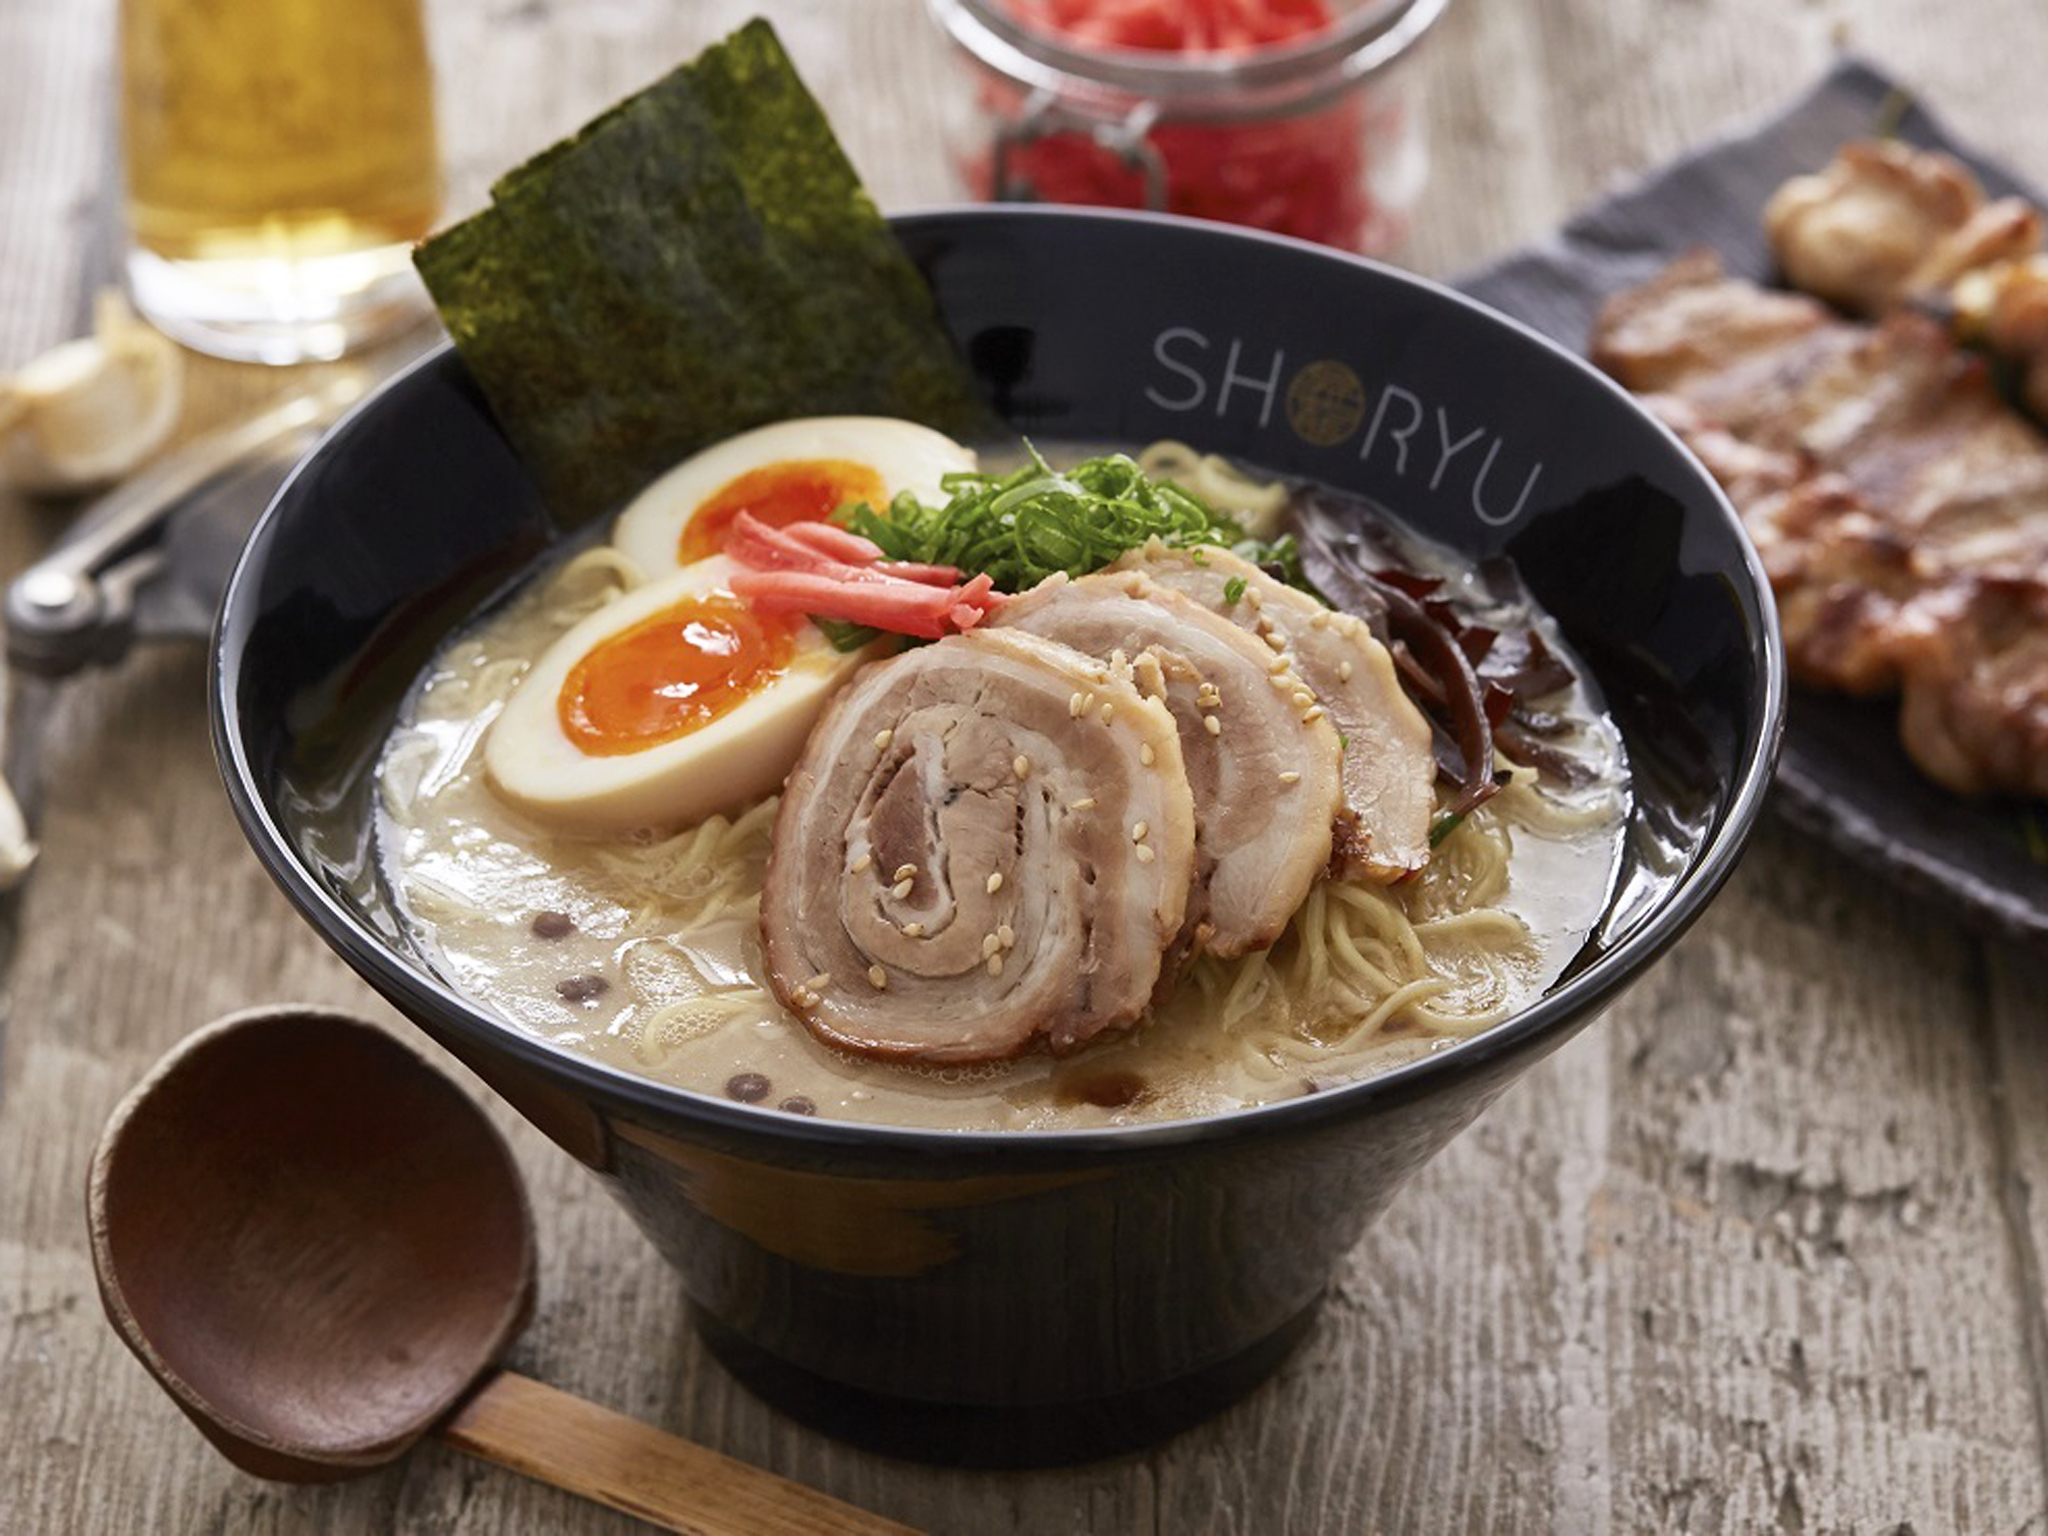 london's best ramen restaurants, shoryu ramen